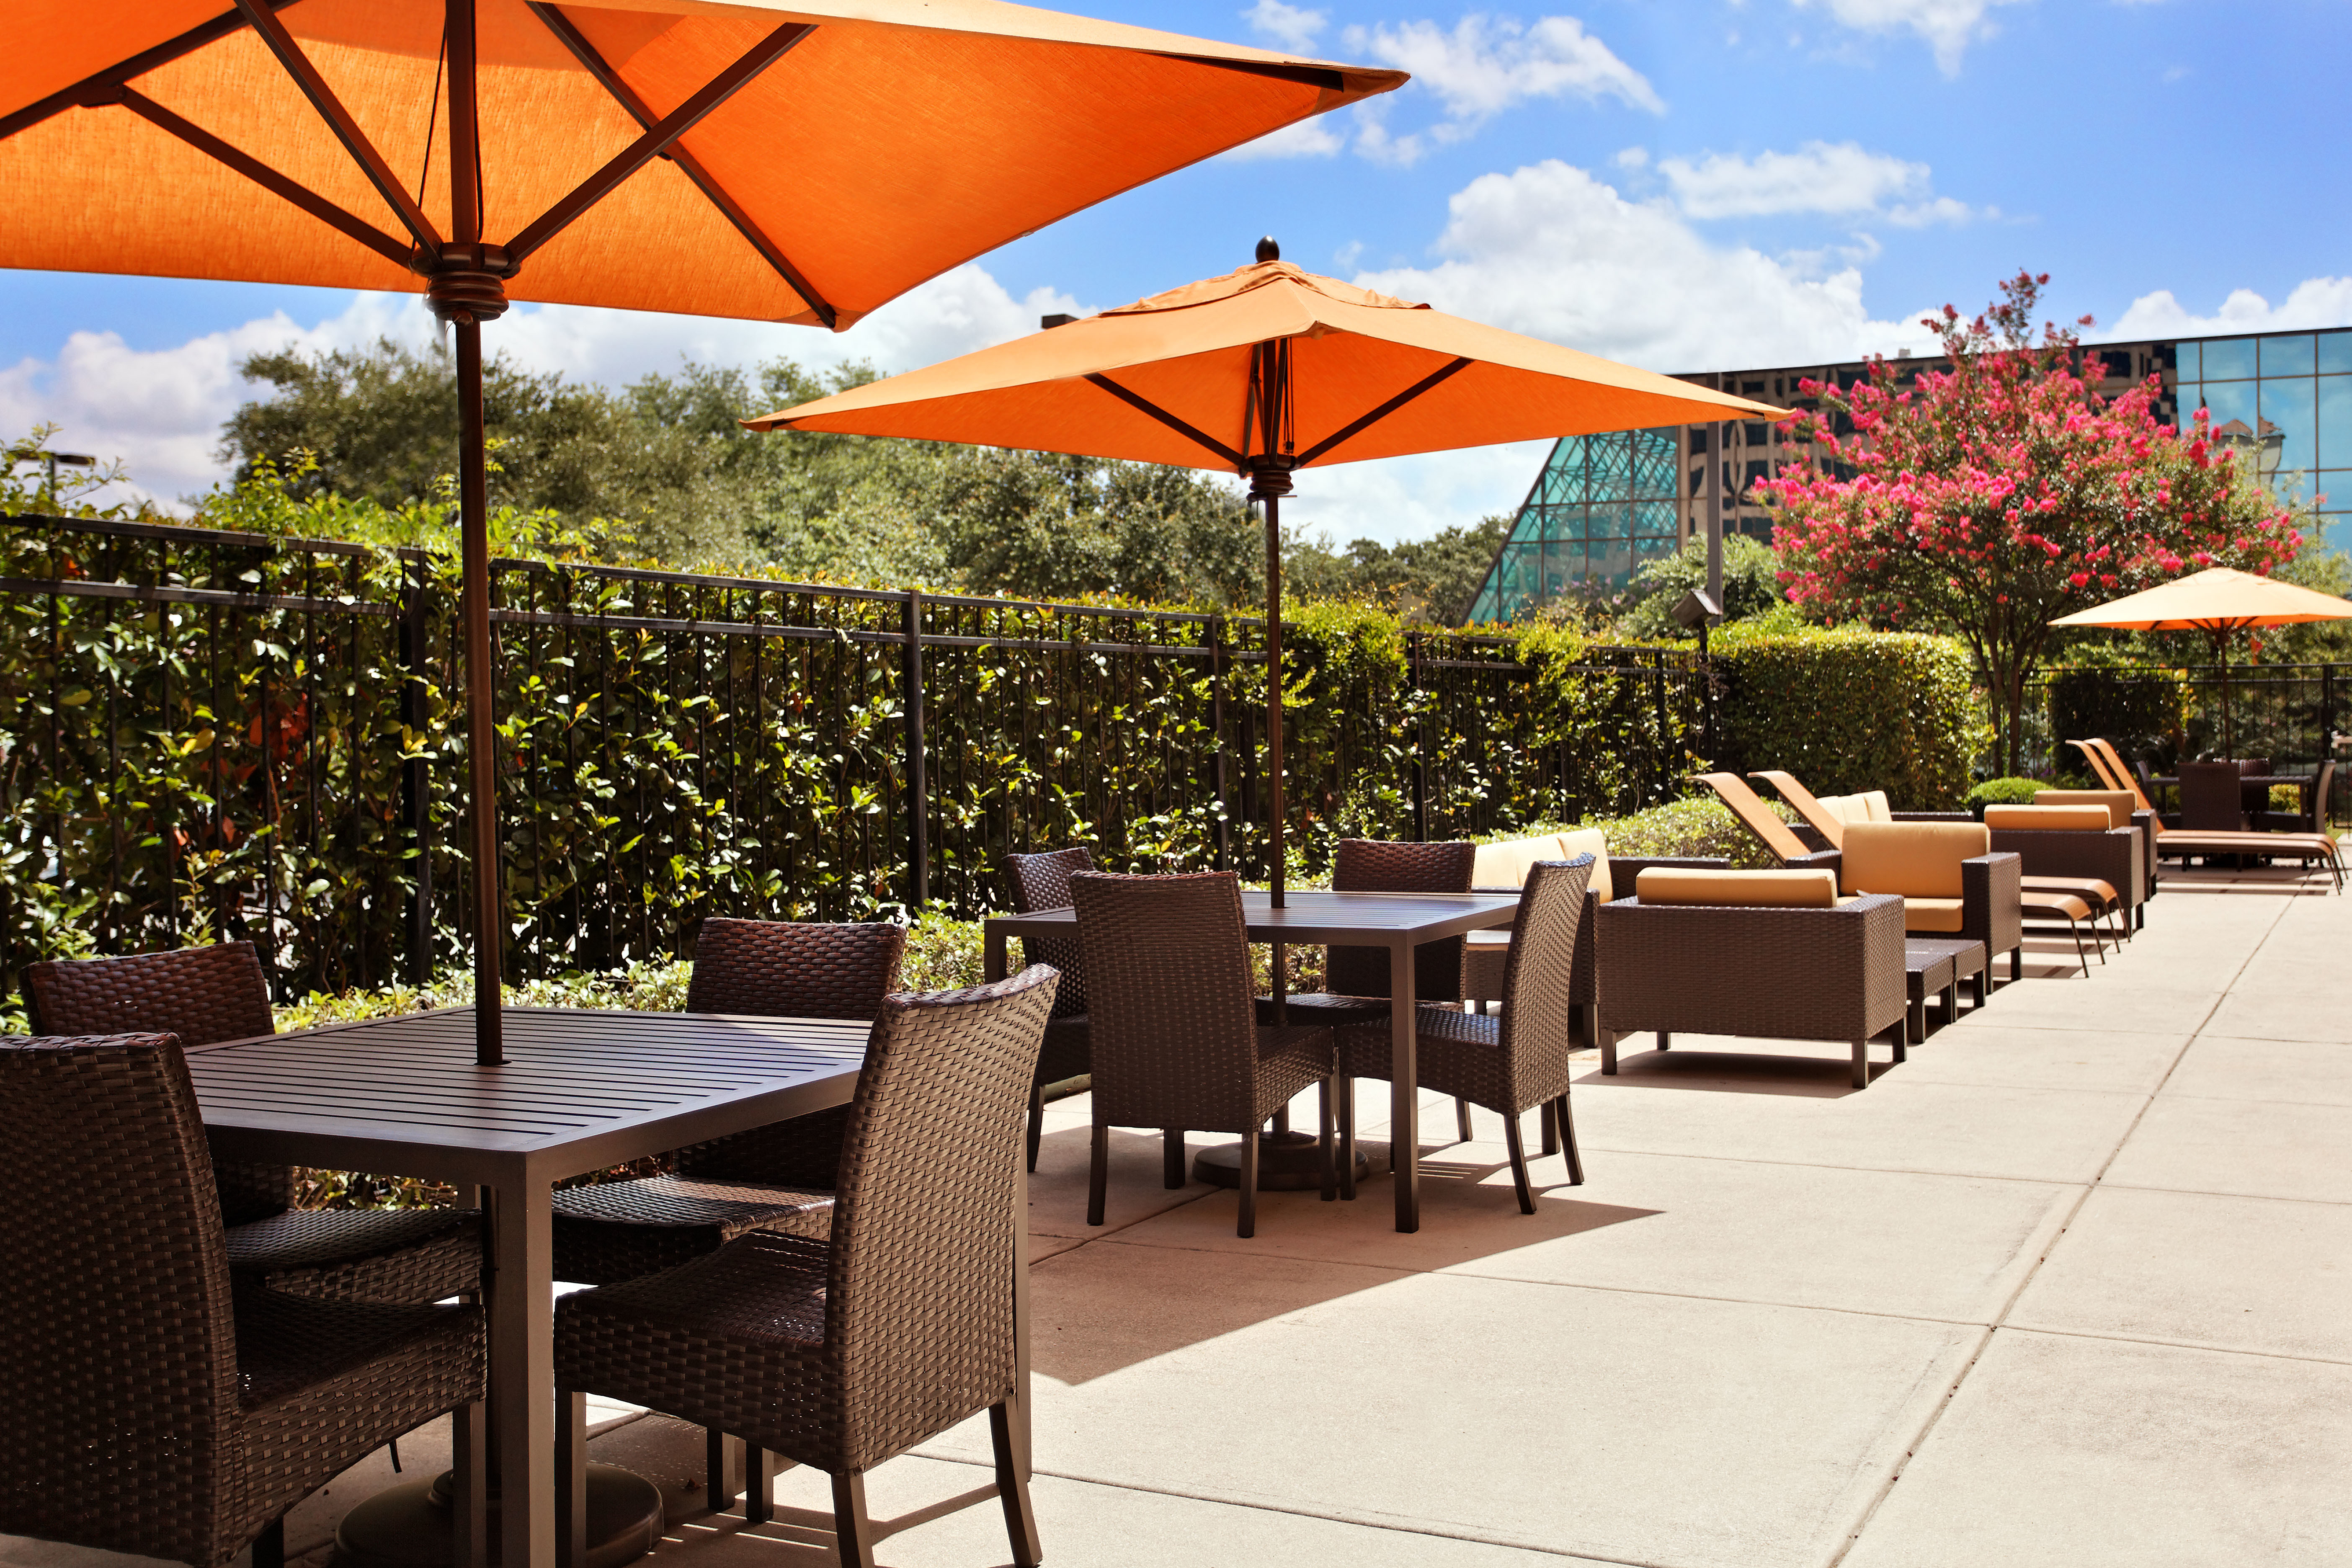 Courtyard by Marriott San Antonio Airport/North Star Mall image 10